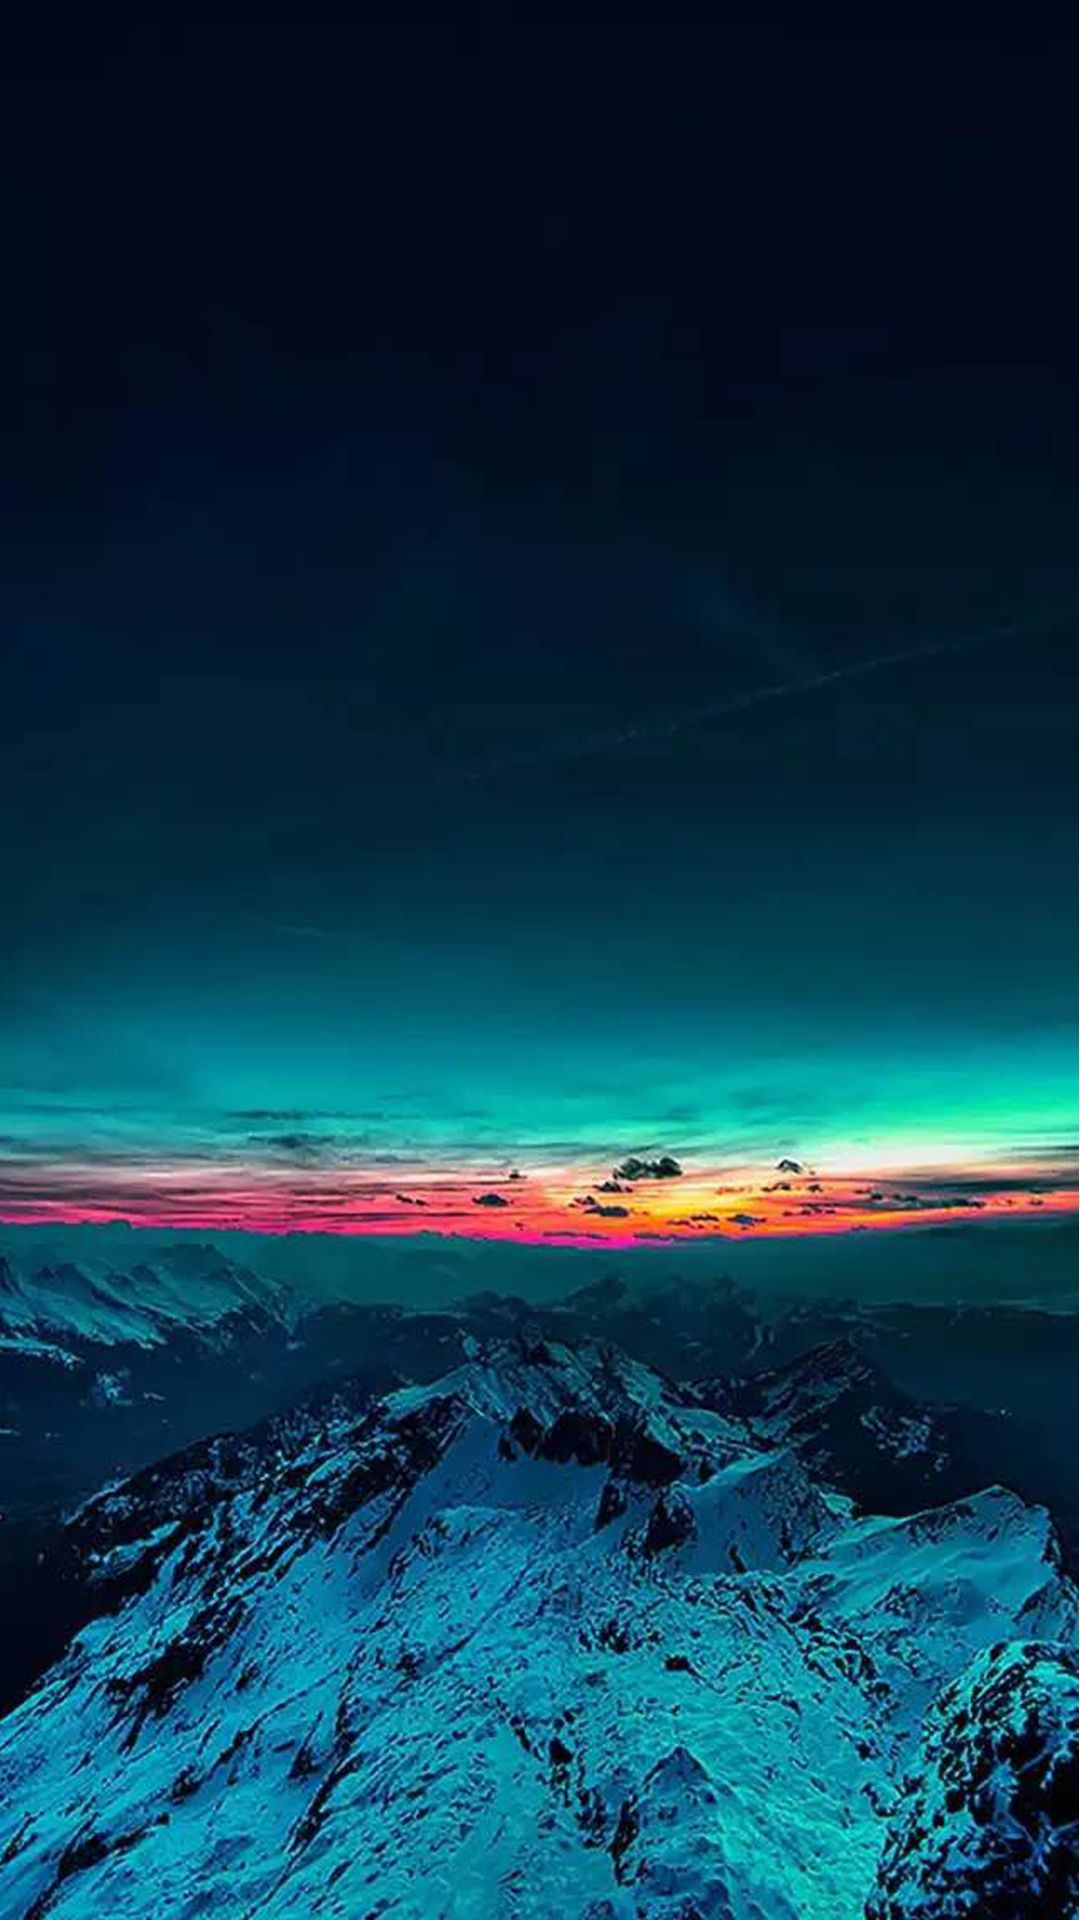 Sky On Fire Mountain Range Sunset iPhone 7 wallpaper